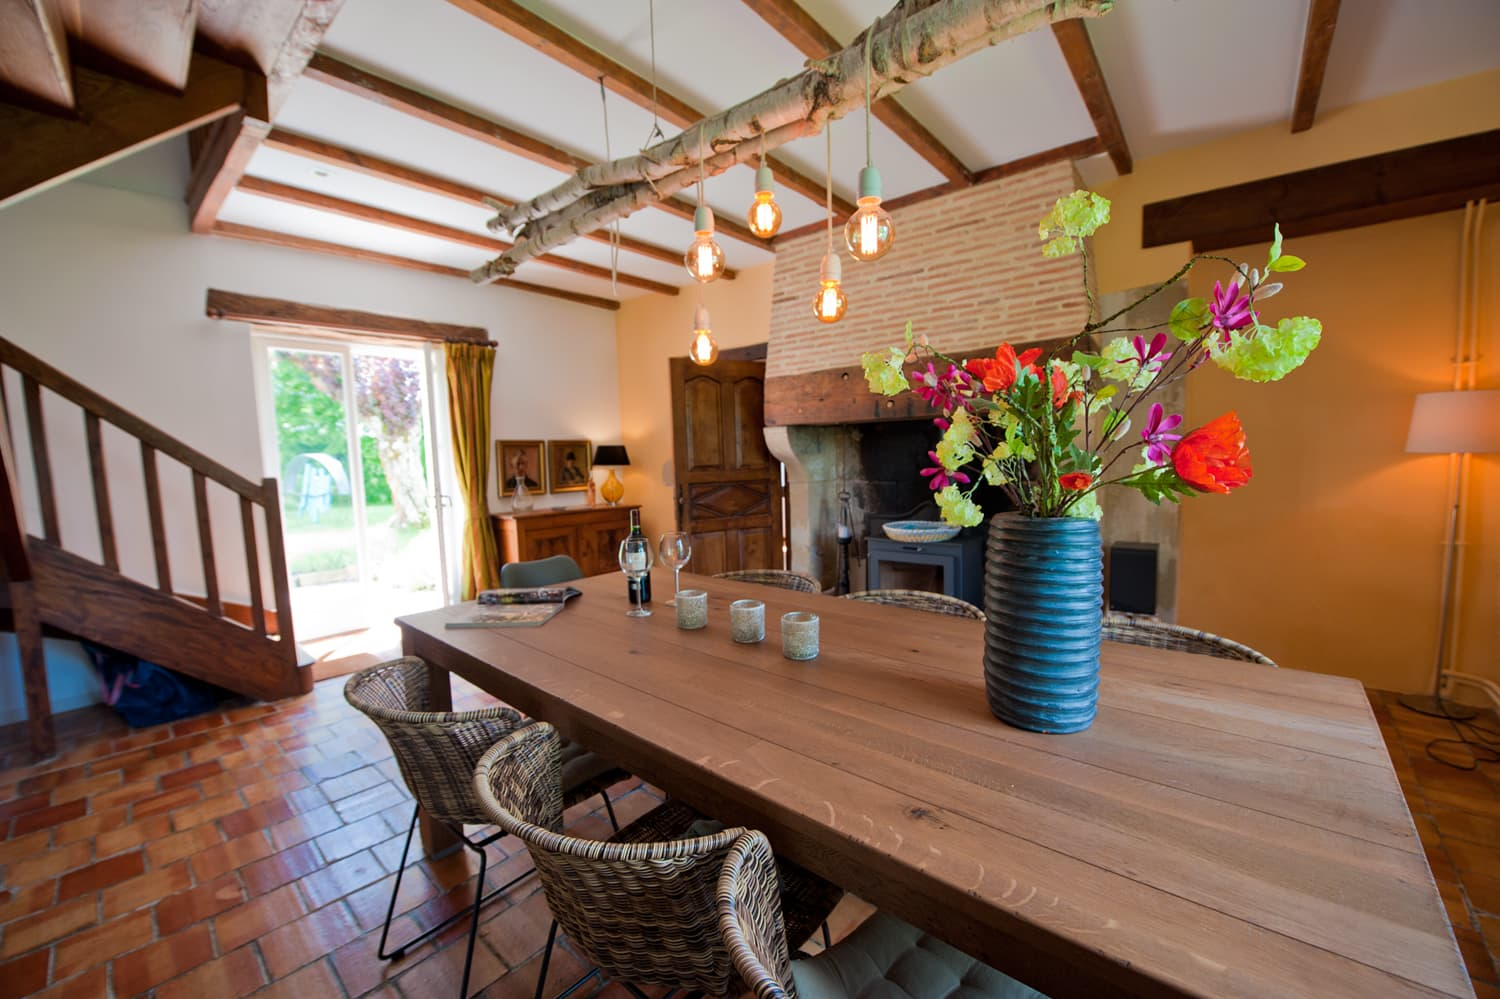 Dining room in Lot-et-Garonne rental accommodation